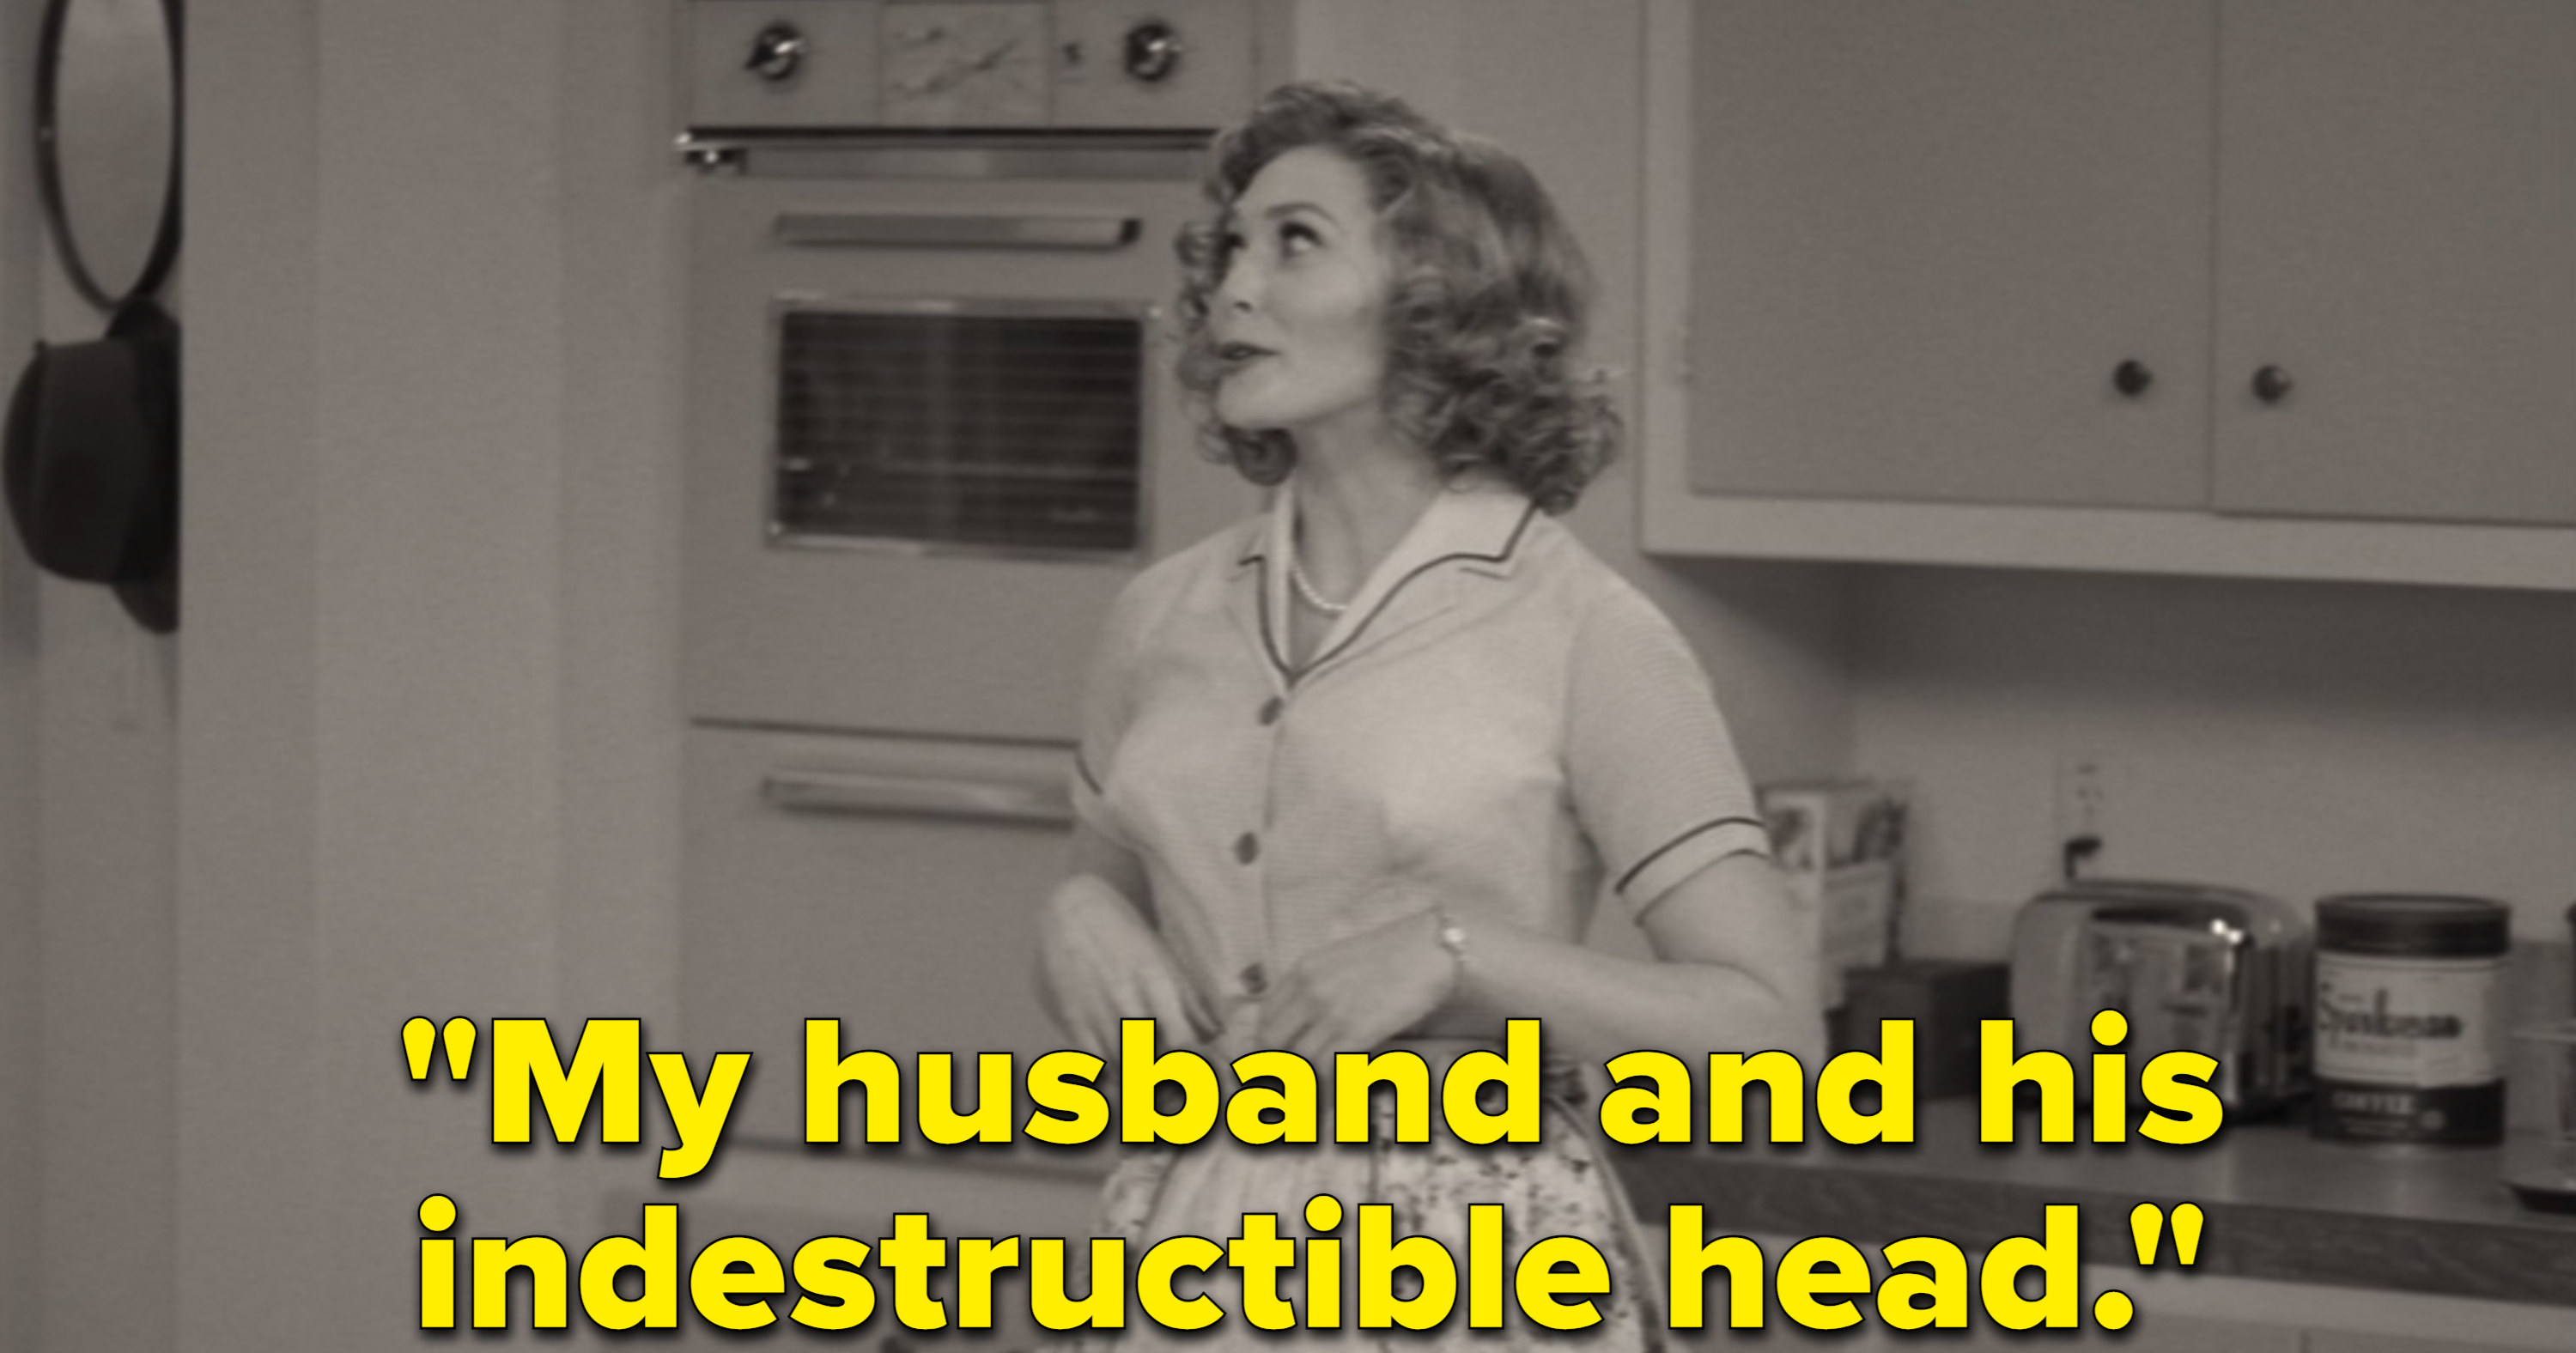 """Wanda, tinted in black and white, tells Vision, """"My husband and his indestructible head."""""""